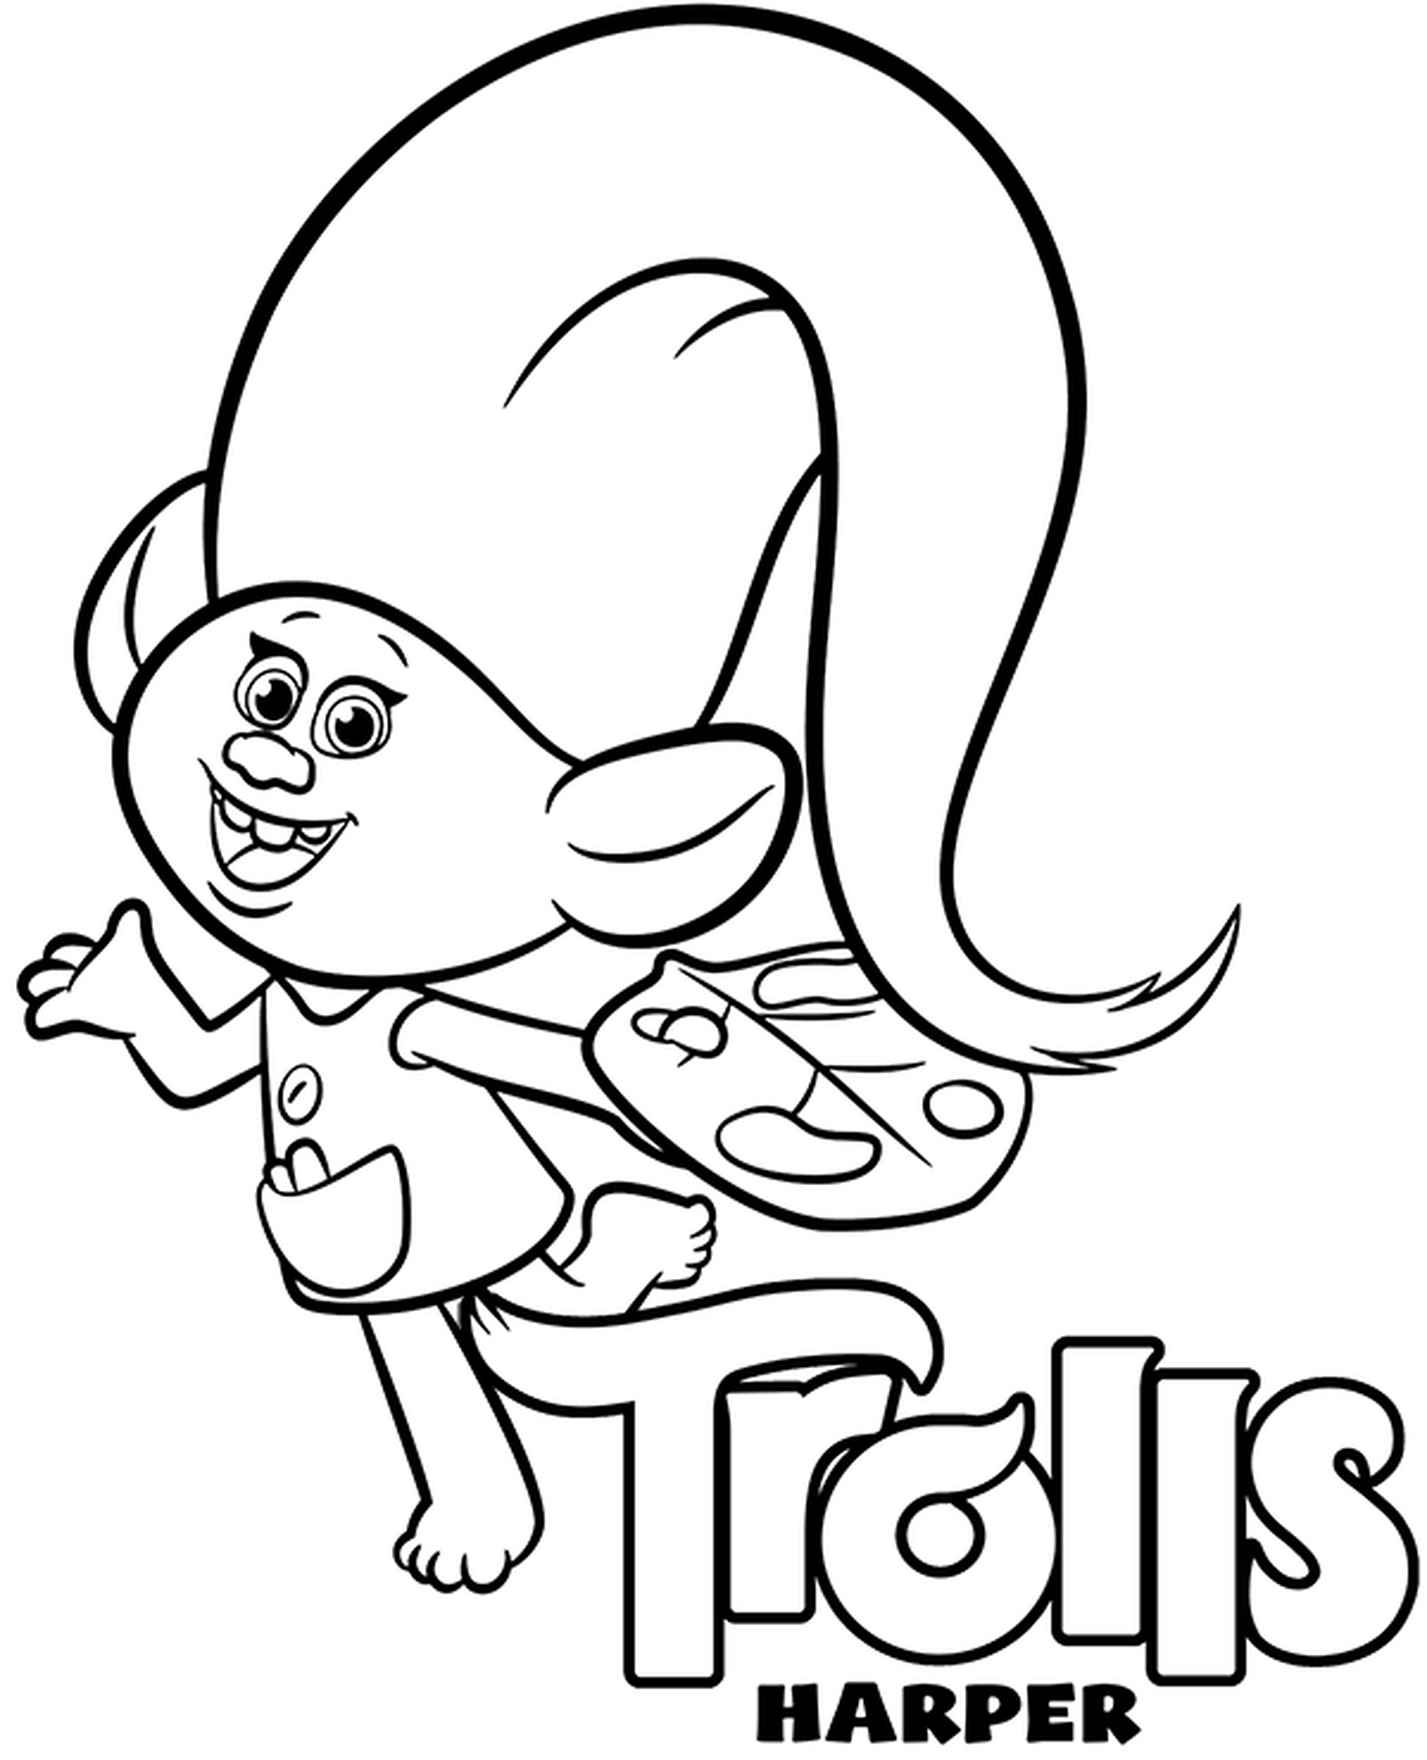 Harper Coloring Page Trolls